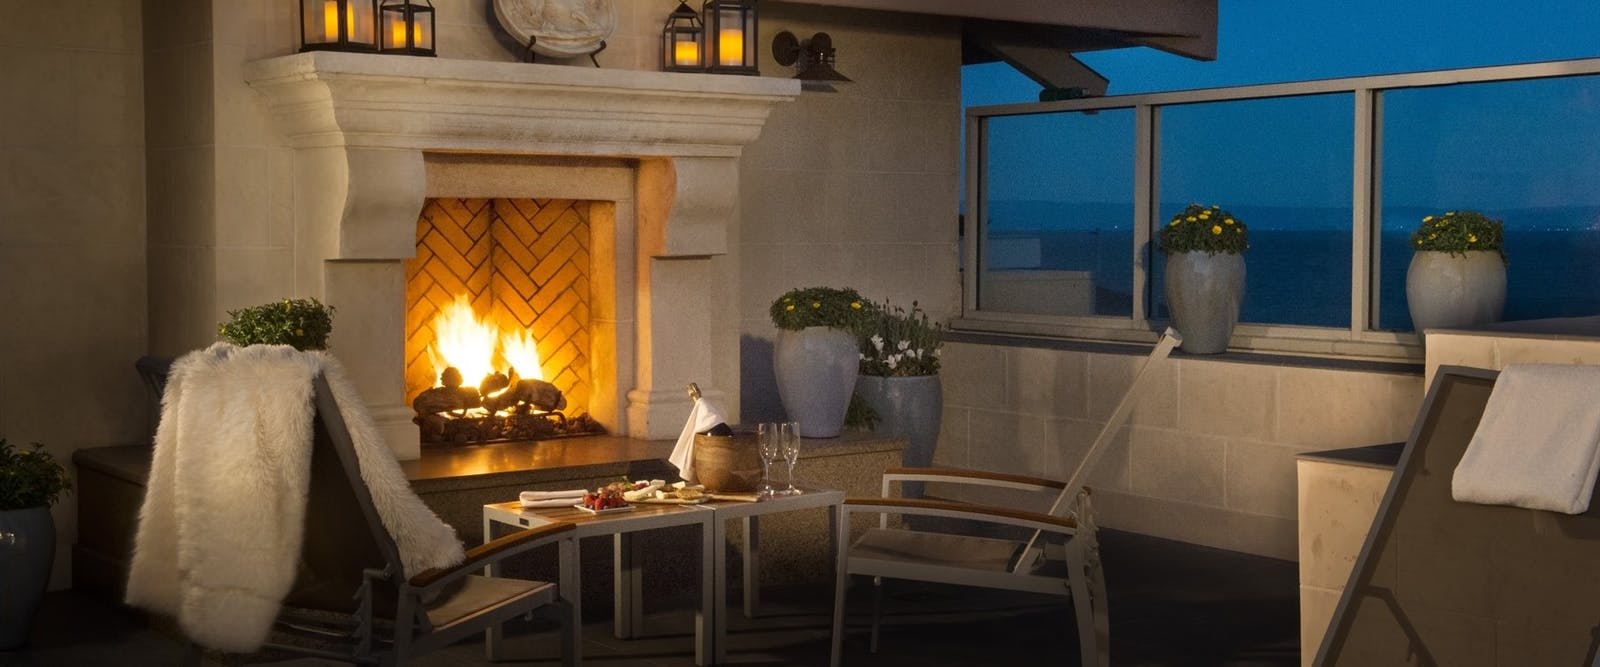 Spa Fireplace at Monterey Plaza, California